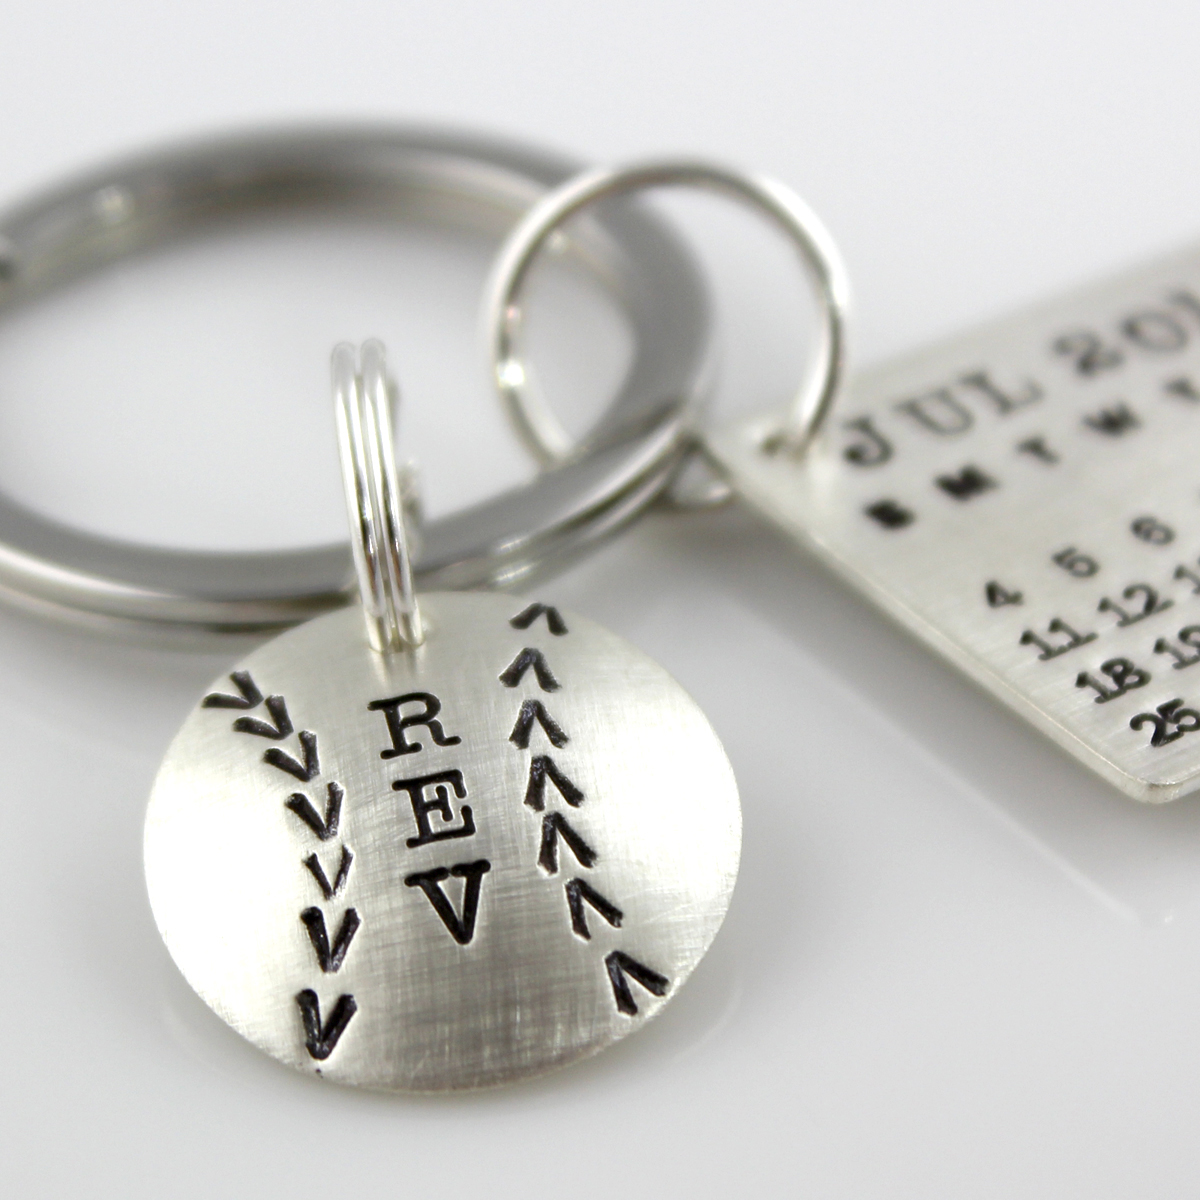 Mark Your Calendar Key Chain with Baseball Charm